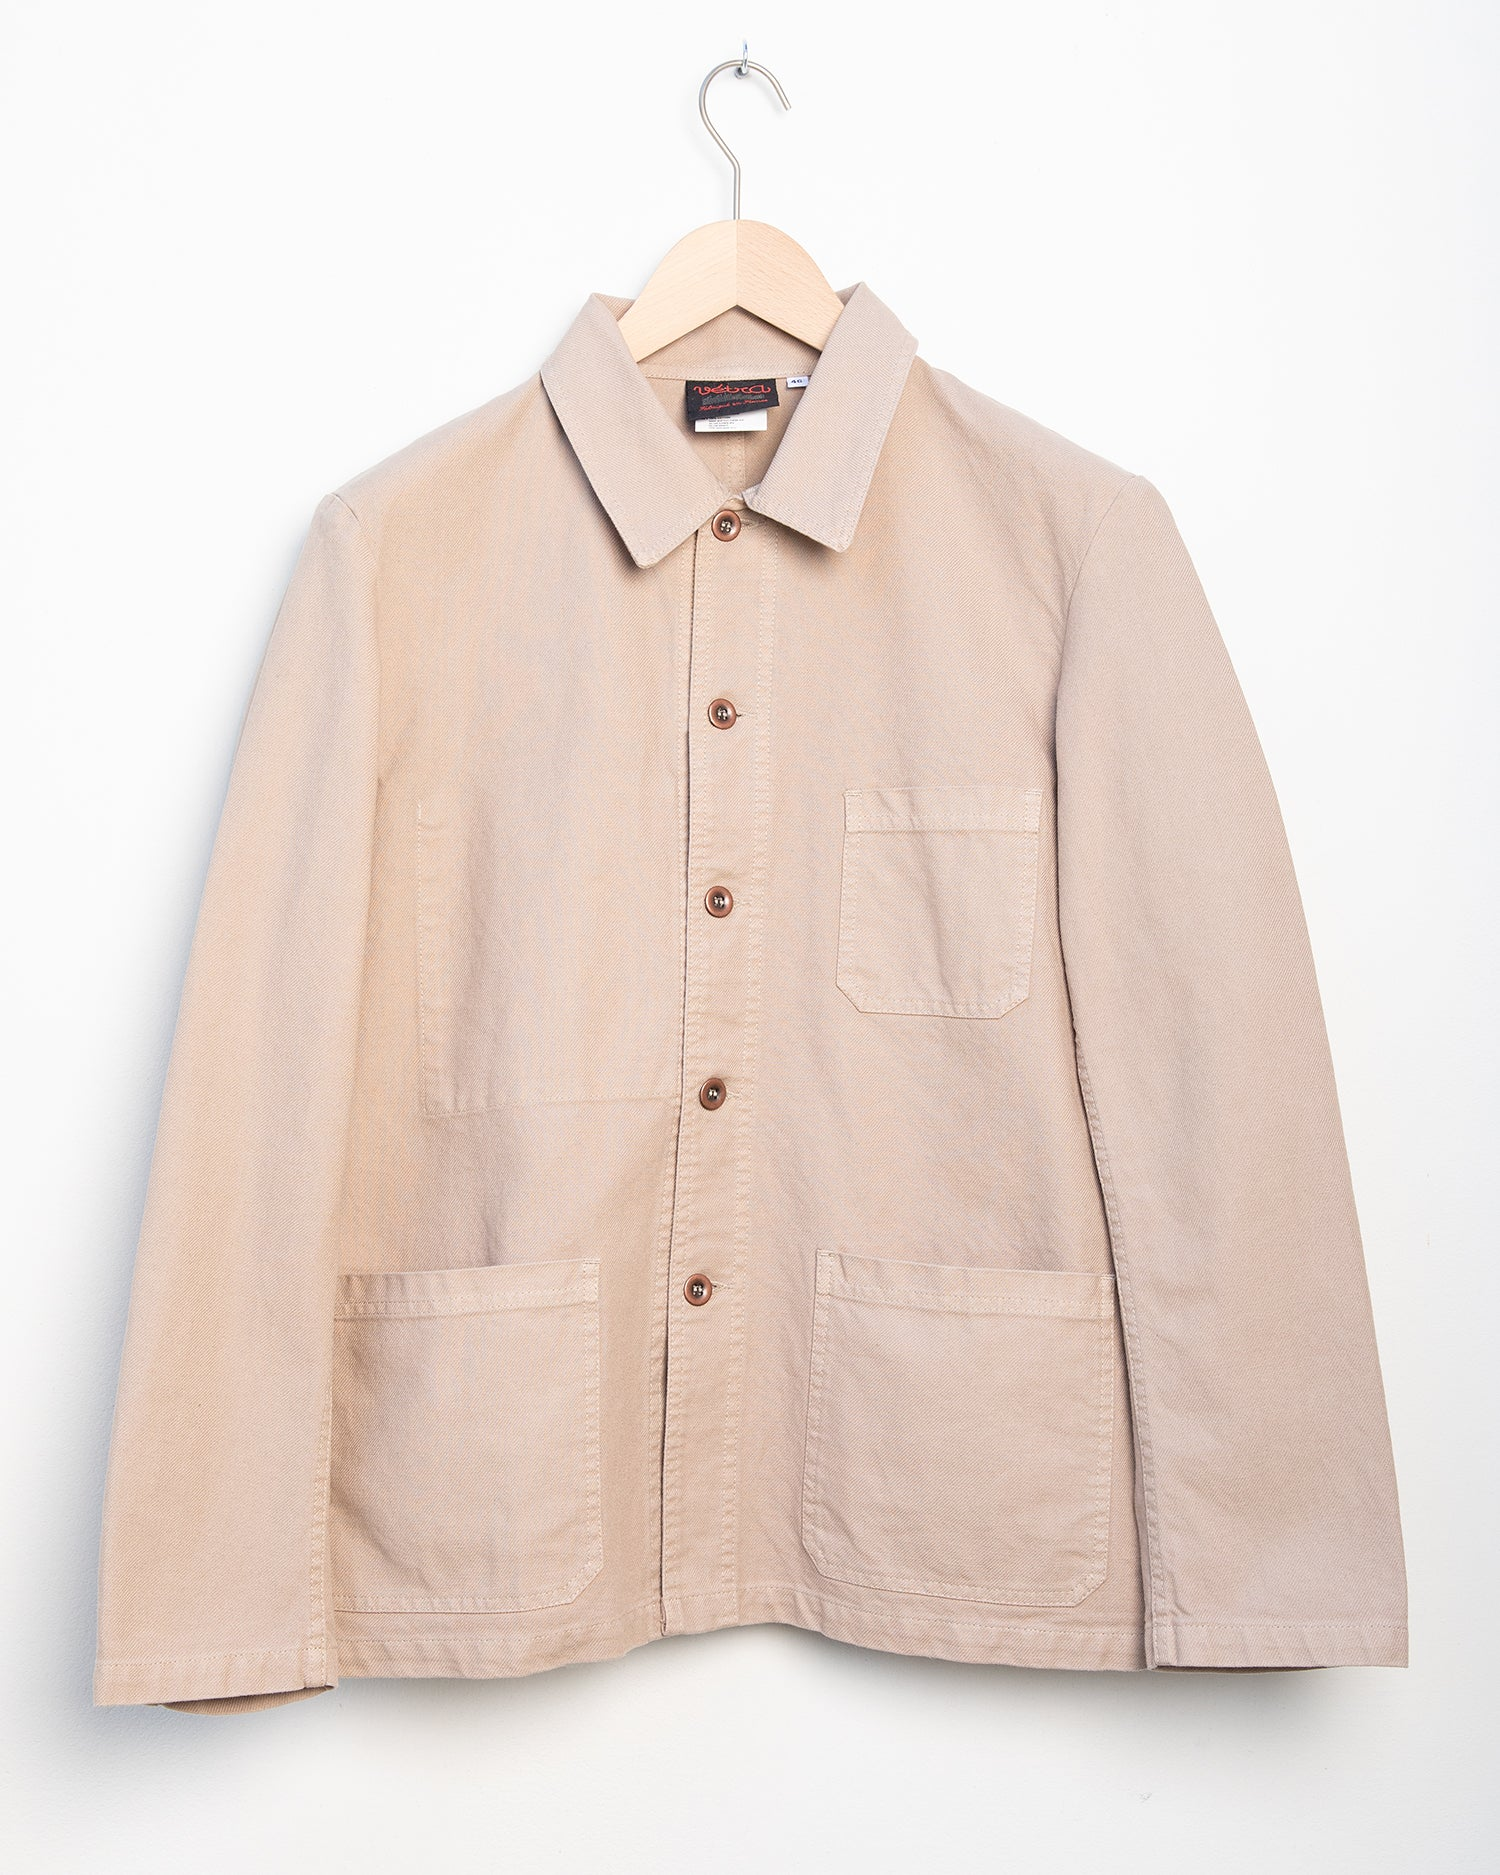 Workwear Jacket 5C in Twill Fabric - Chalk